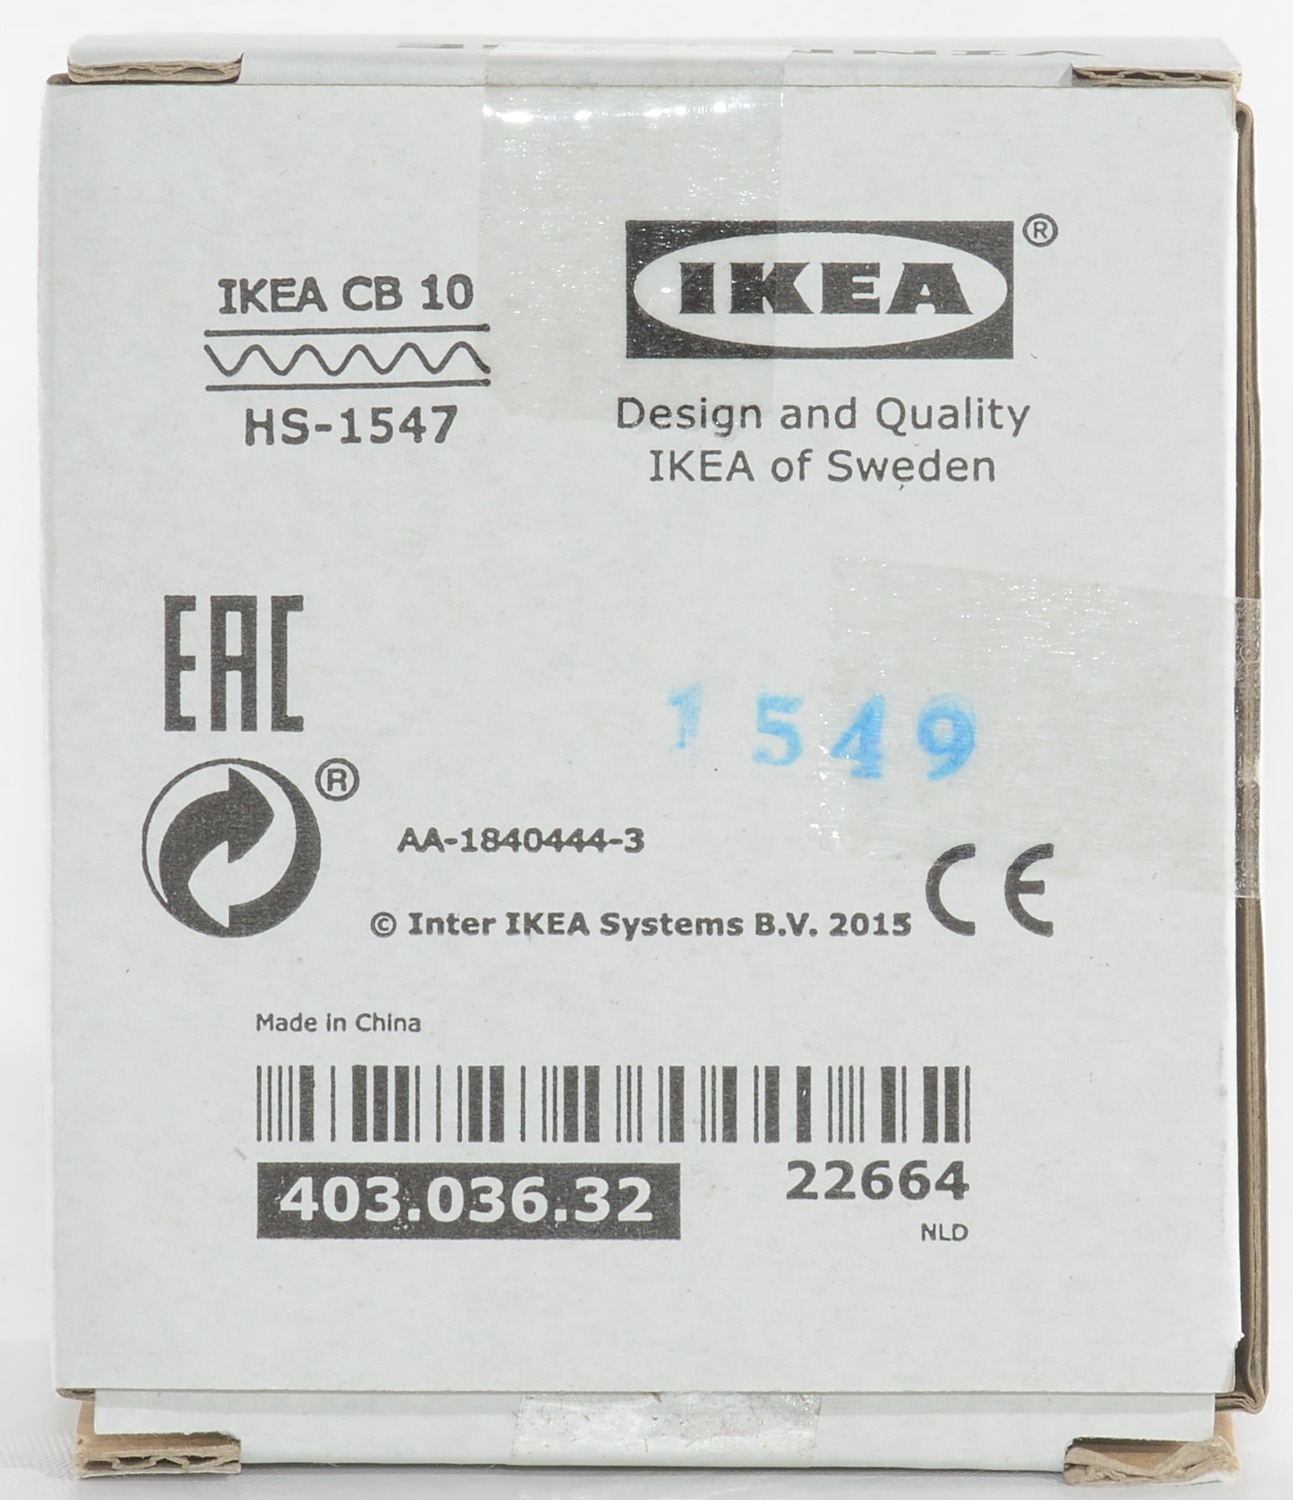 Review of Charger Ikea Vinninge 403 036 32